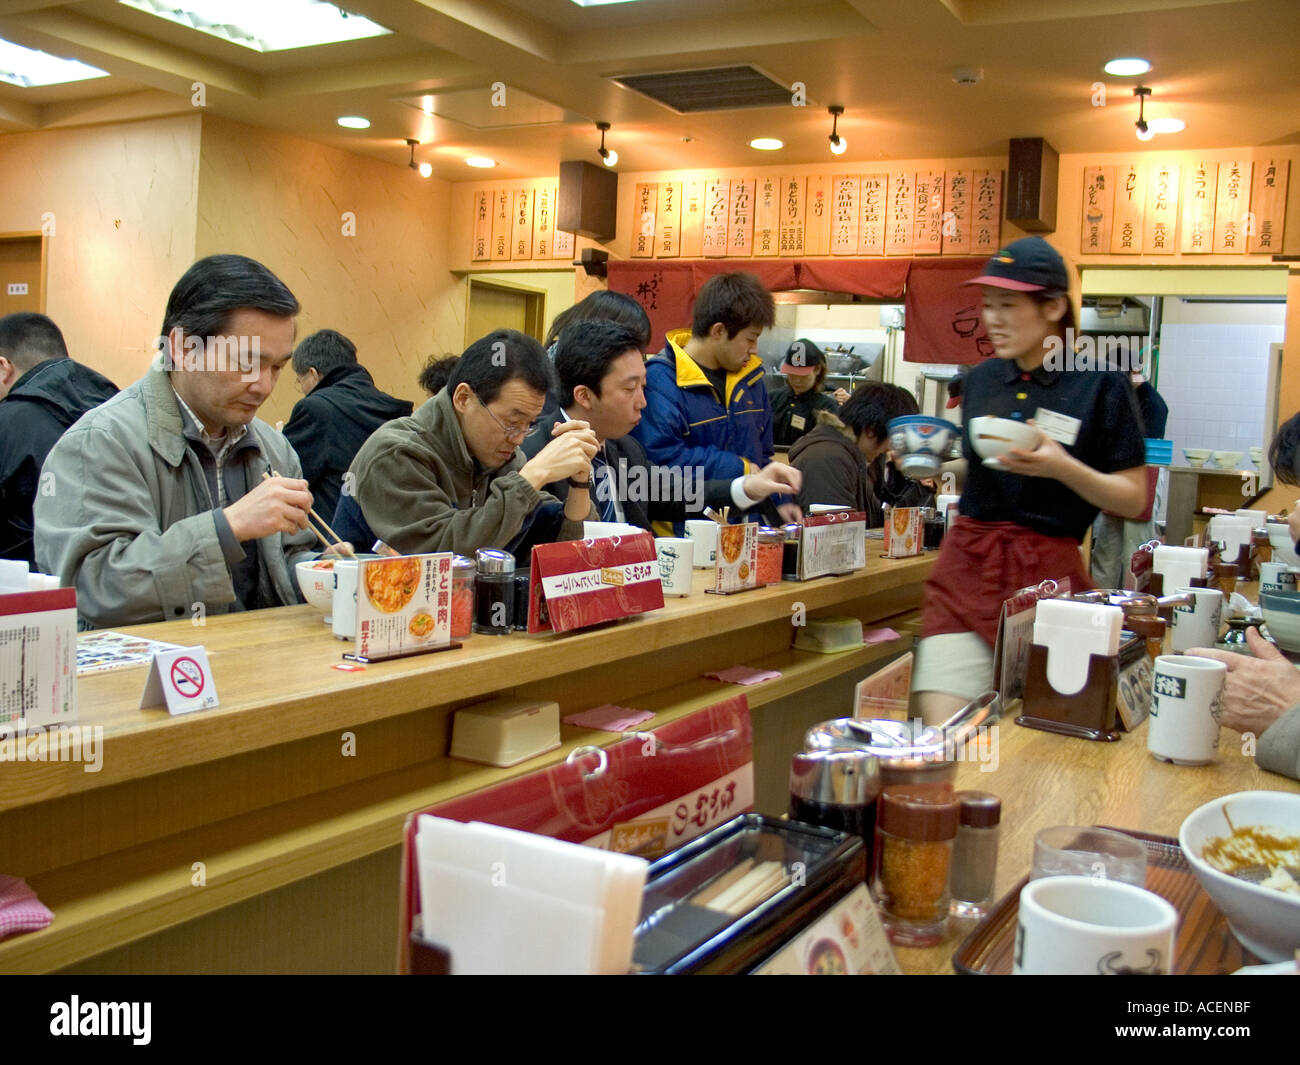 Inside a small local eatery for people on the go sitting at a counter - Stock Image